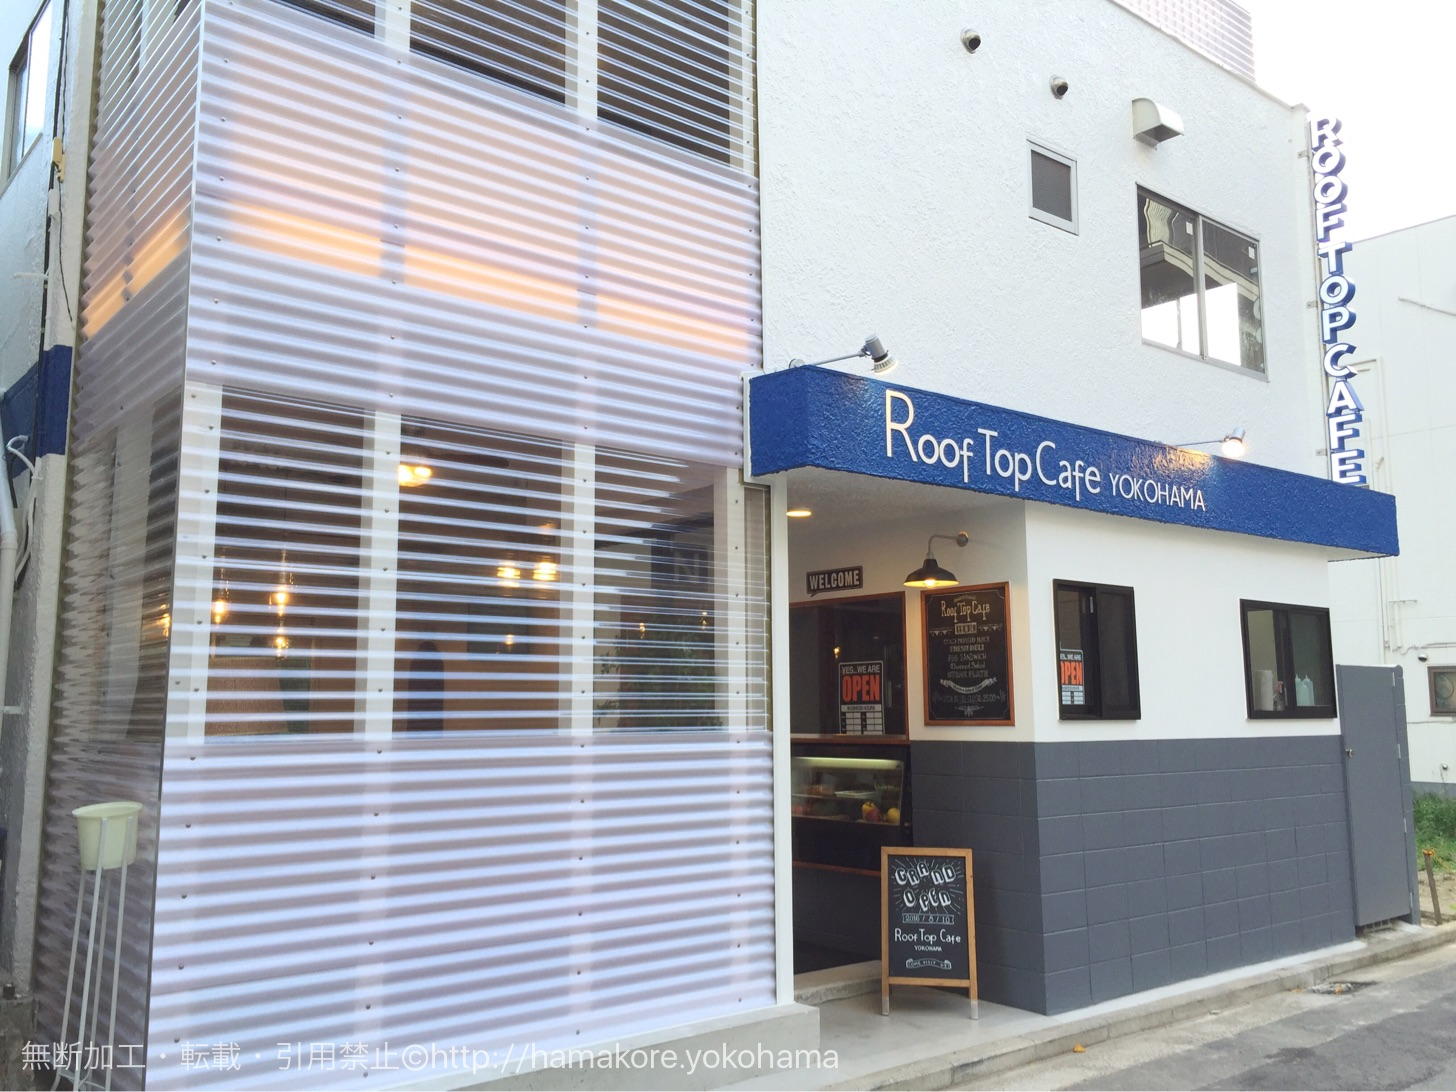 Roof Top Cafe YOKOHAMA 外観